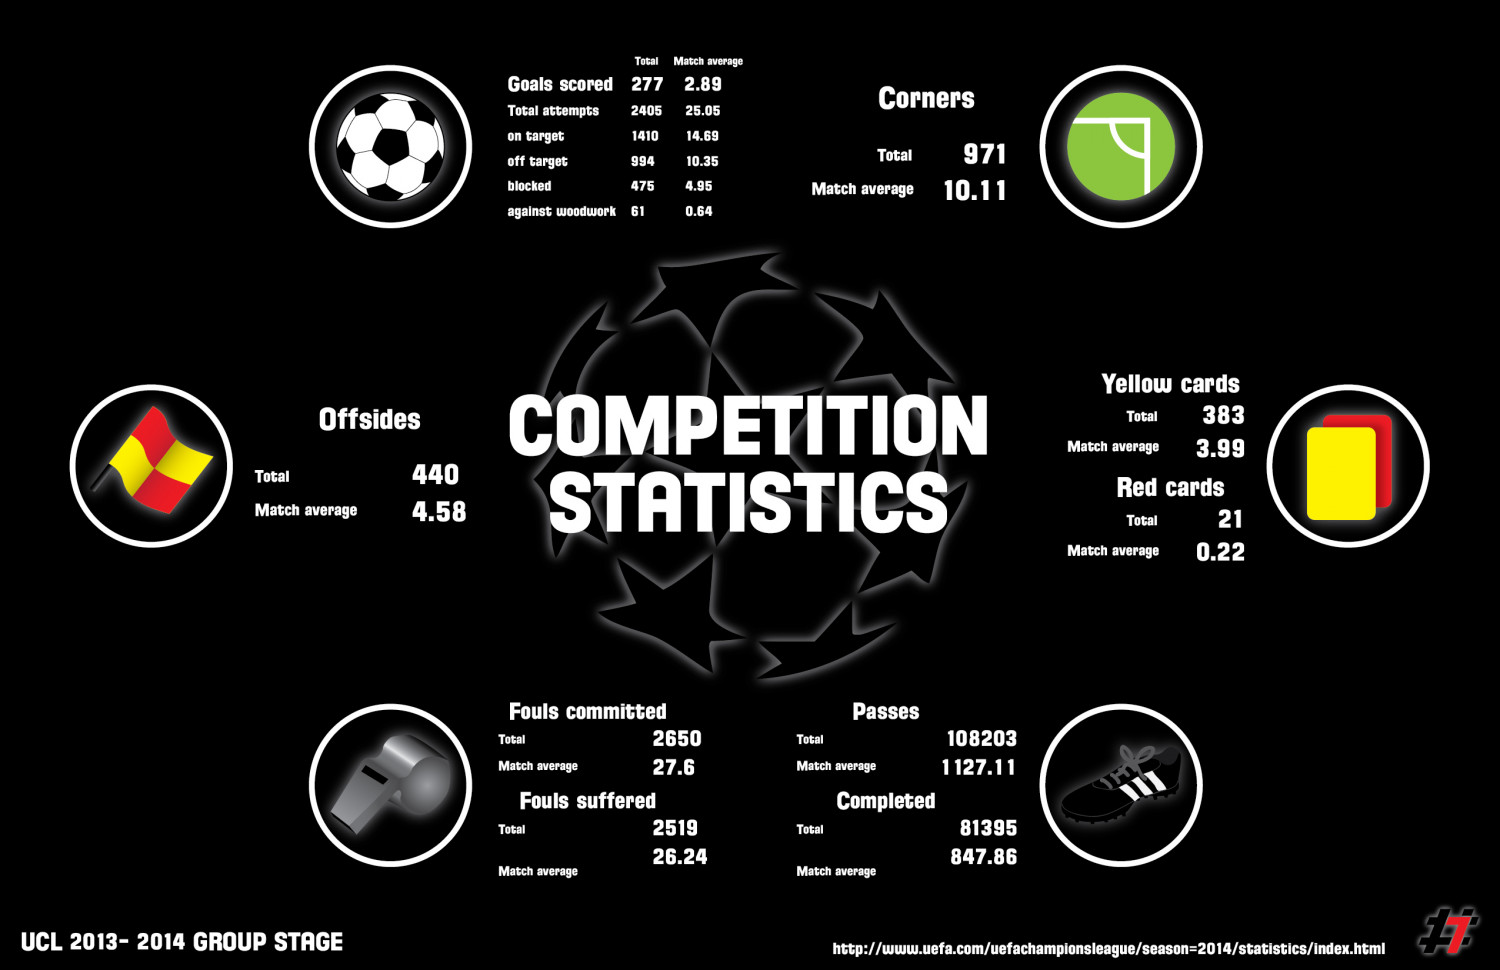 UCL 2013 - 2014 Group Stage STATISTICS Infographic